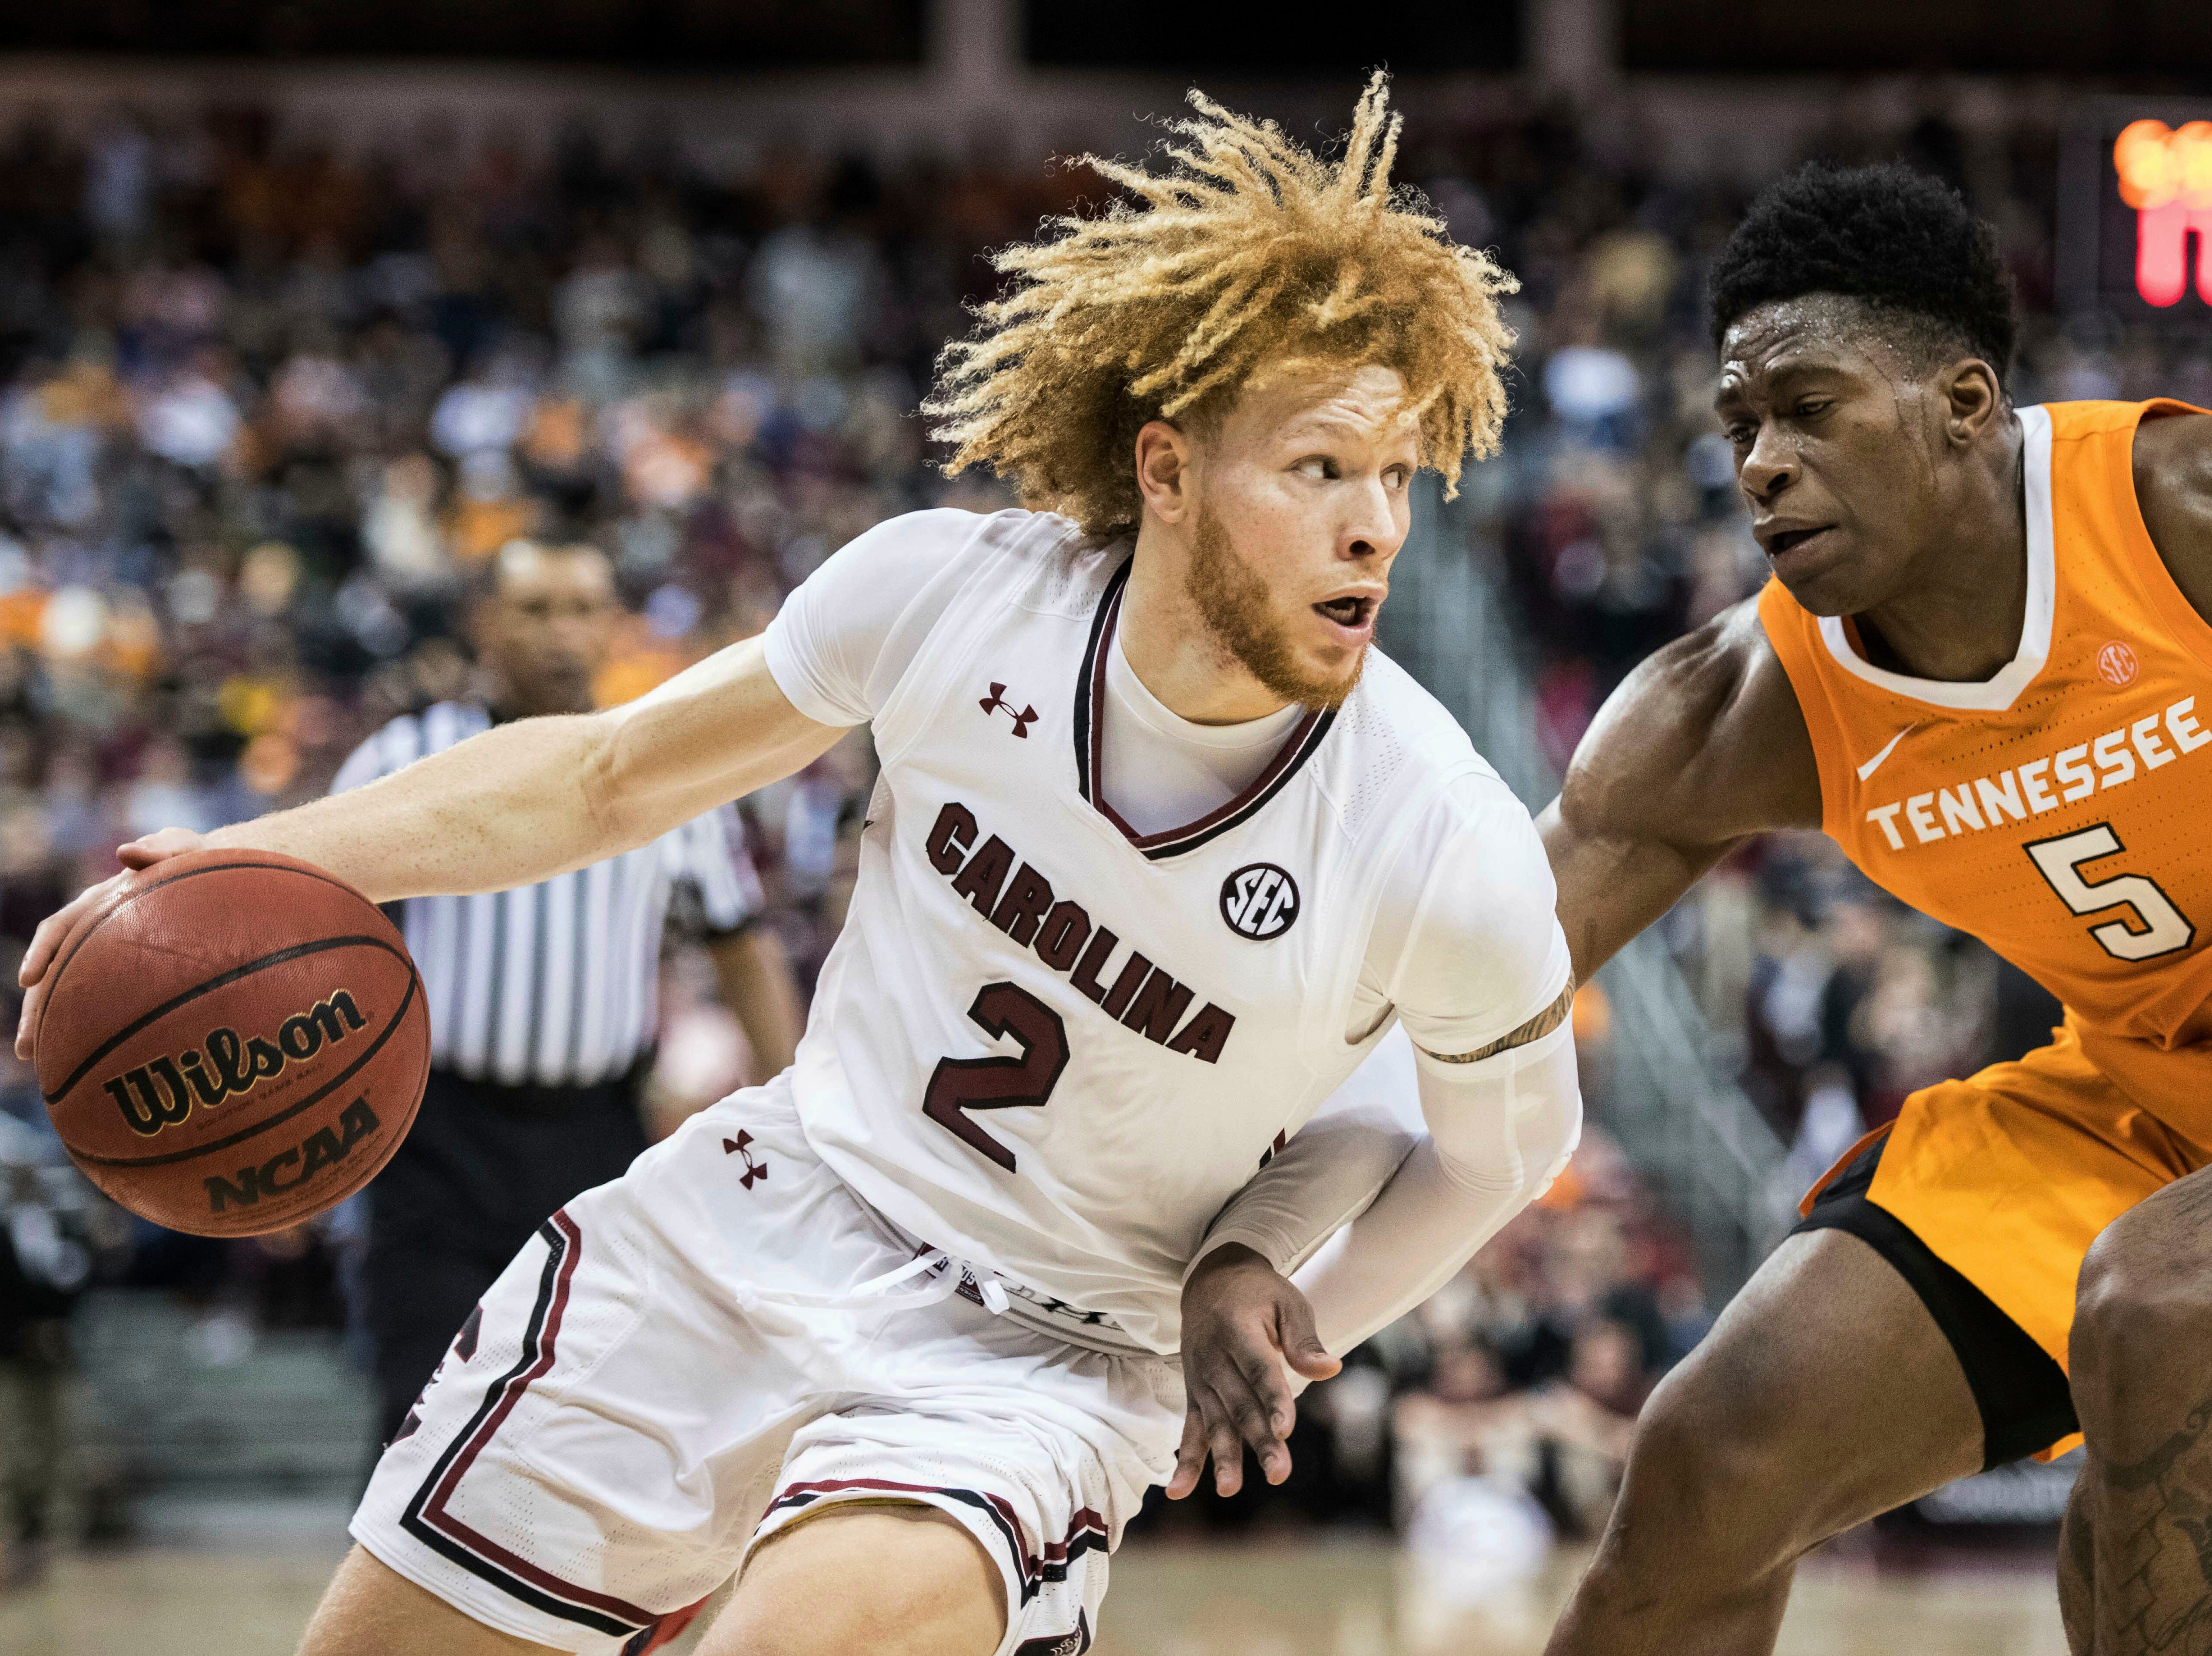 South Carolina guard Hassani Gravett (2) drives to the hoop against Tennessee guard Admiral Schofield (5) during the first half of an NCAA college basketball game Tuesday, Jan. 29, 2019, in Columbia, S.C. Tennessee defeated South Carolina 92-70.